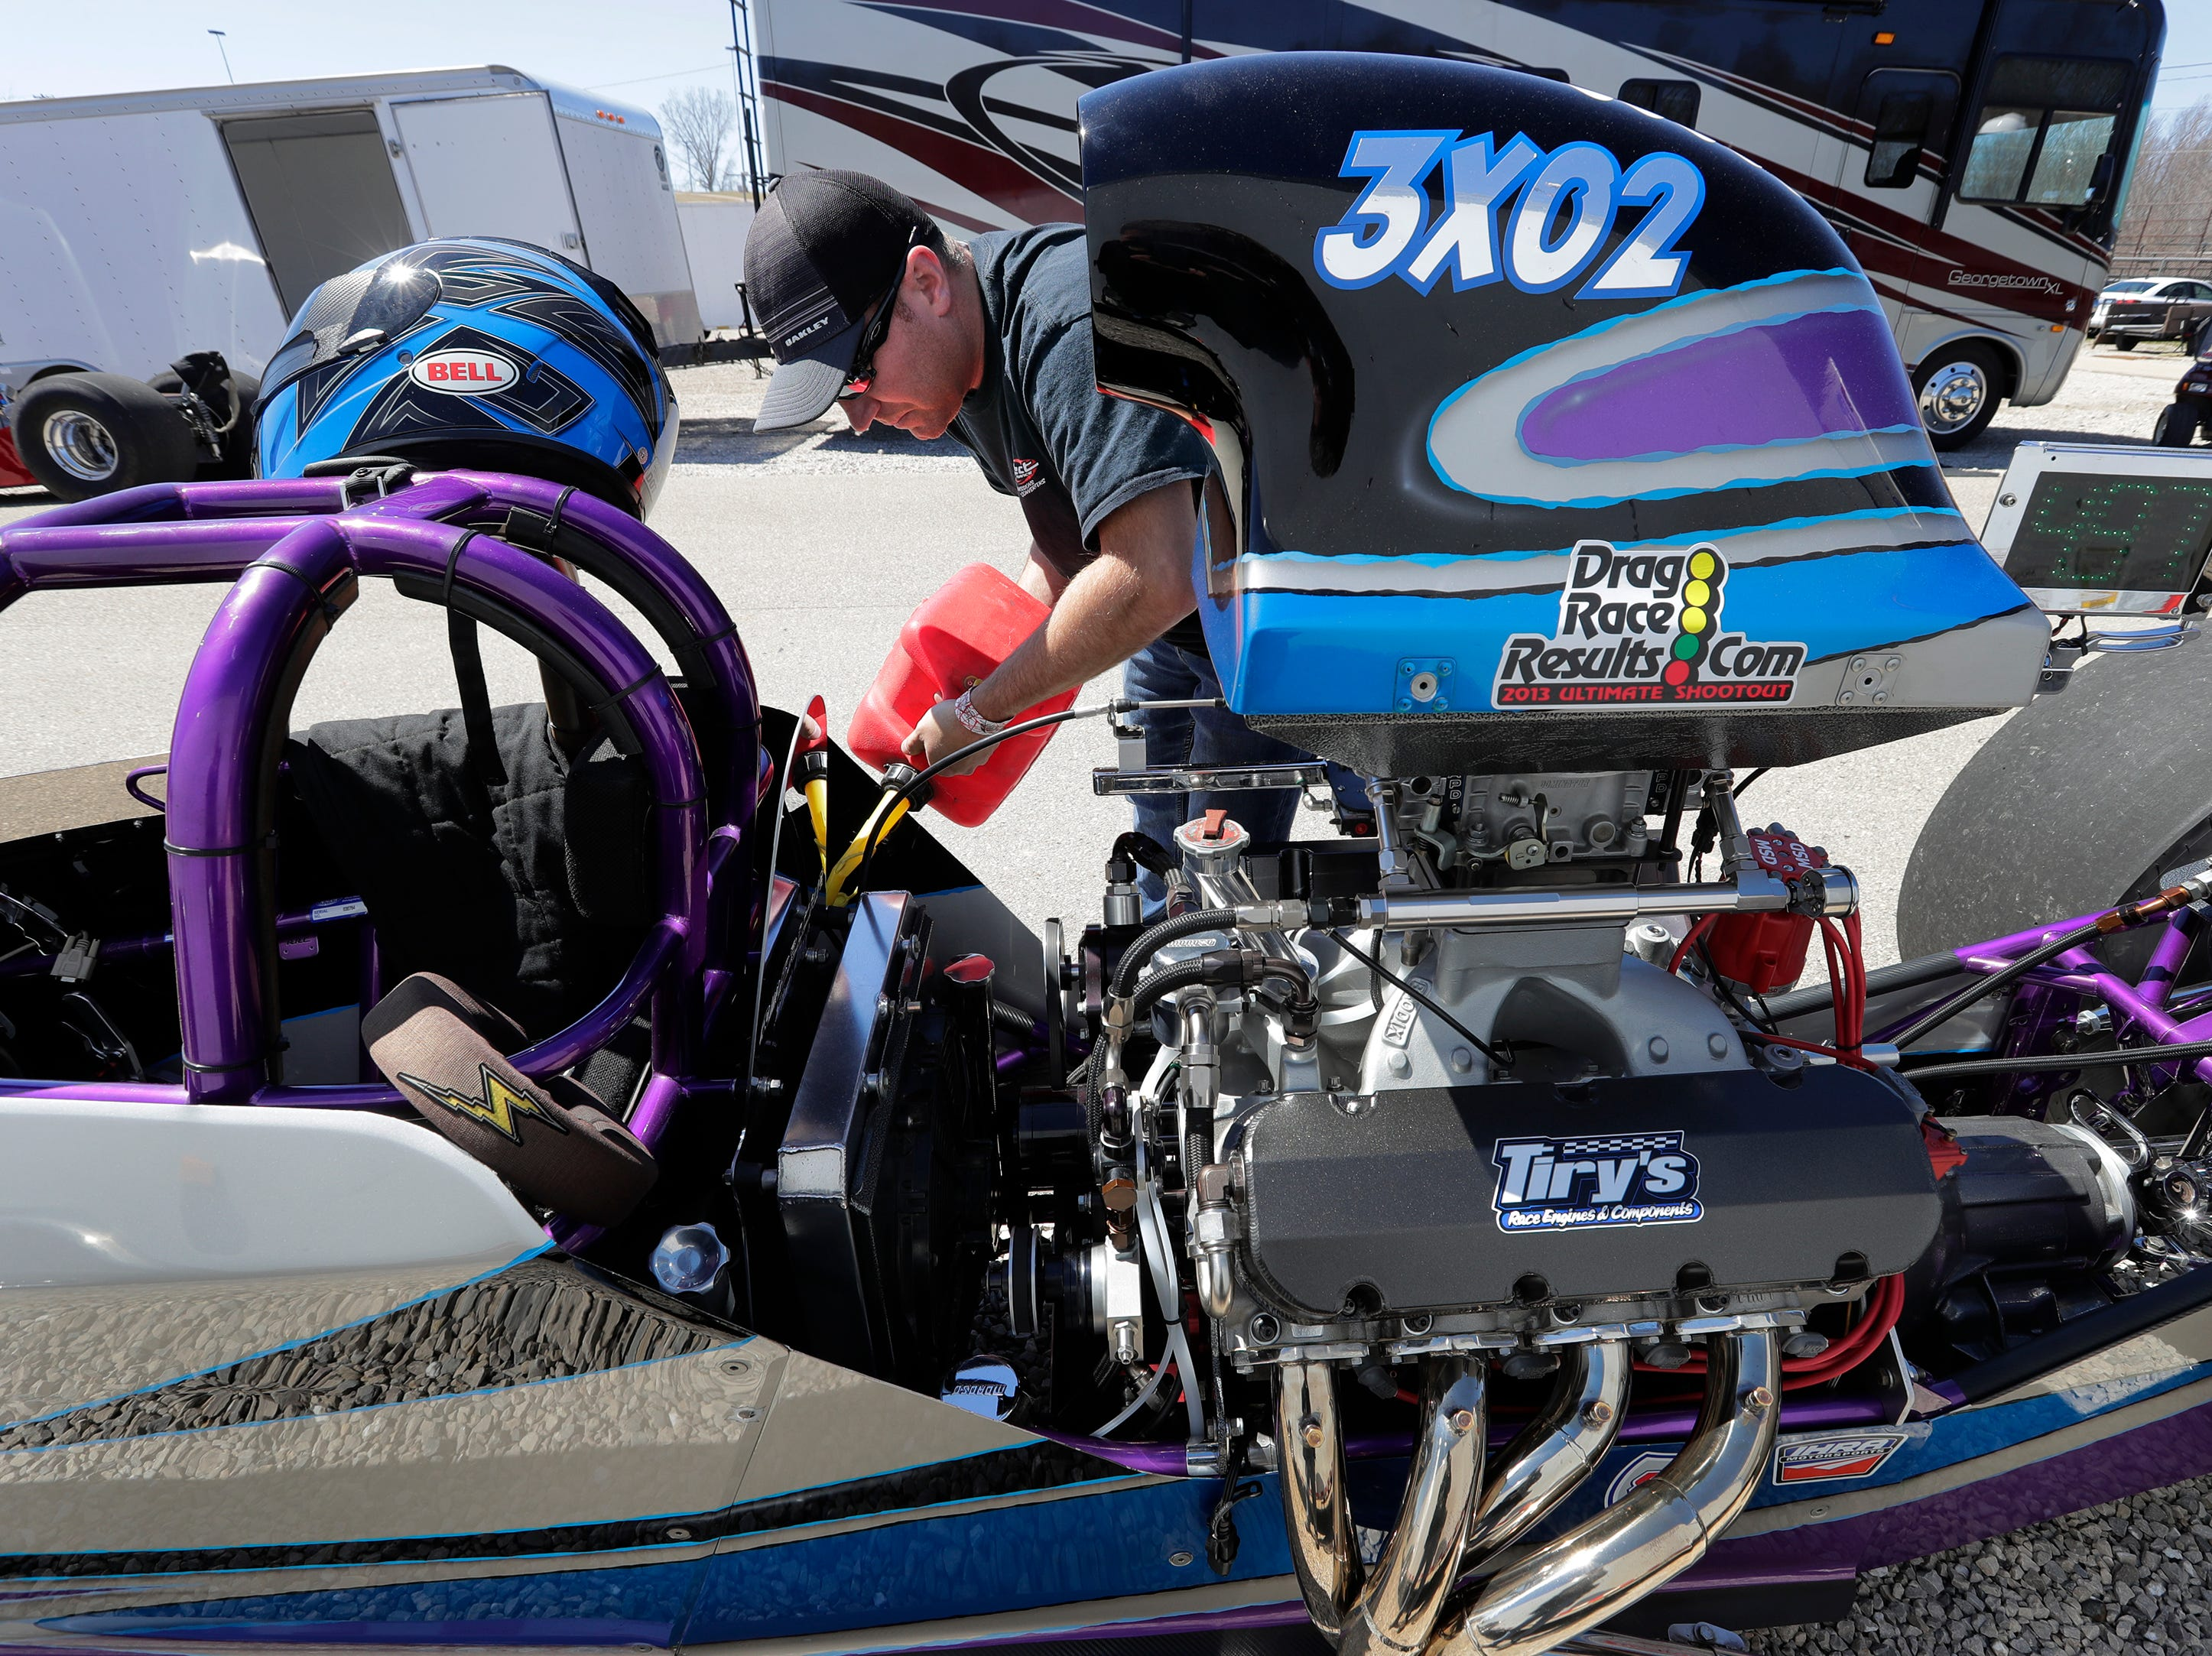 Derek Degnitz of Slinger prepares his dragster for a test run during the Wisconsin International Raceway Strip Test & Tune event Saturday, April 19, 2019, in Kaukauna, Wis. Drivers spent the day getting safety inspections, tune ups and test runs on the track for the upcoming season.Dan Powers/USA TODAY NETWORK-Wisconsin